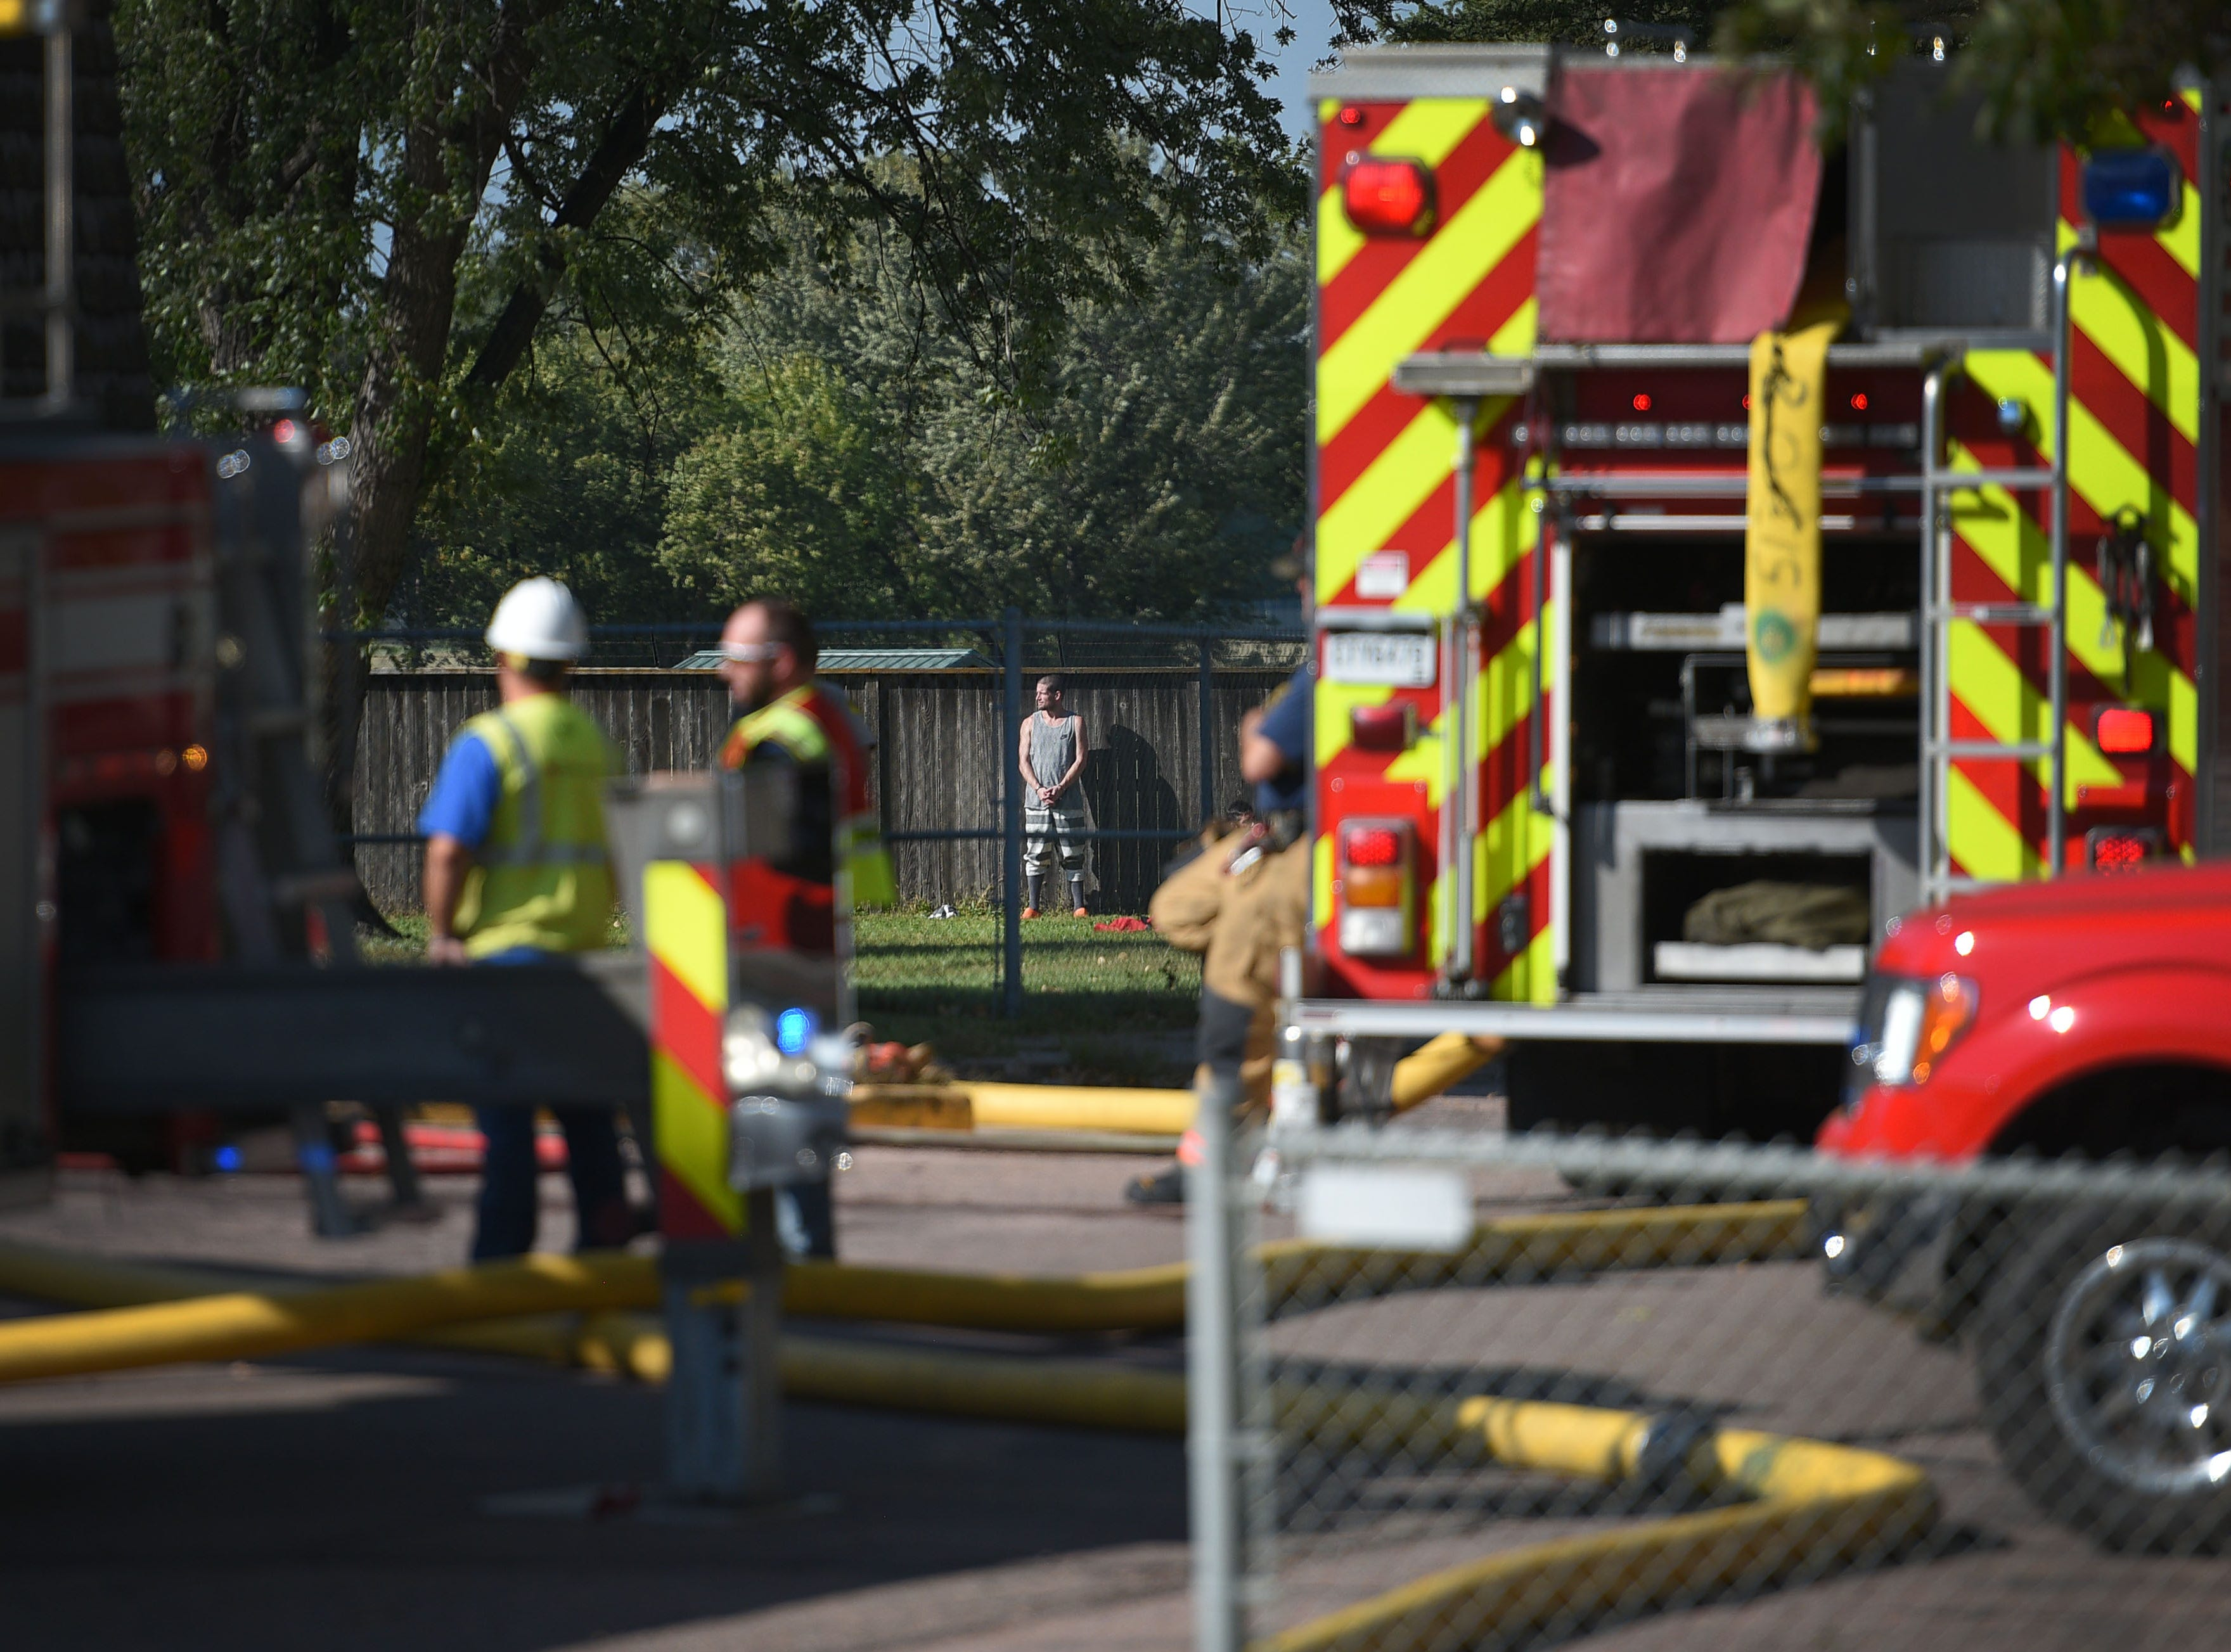 Inmates are transferred from the Minnehaha County Correction Center to the downtown jail after a fire Sunday, Sept. 16, in Sioux Falls.